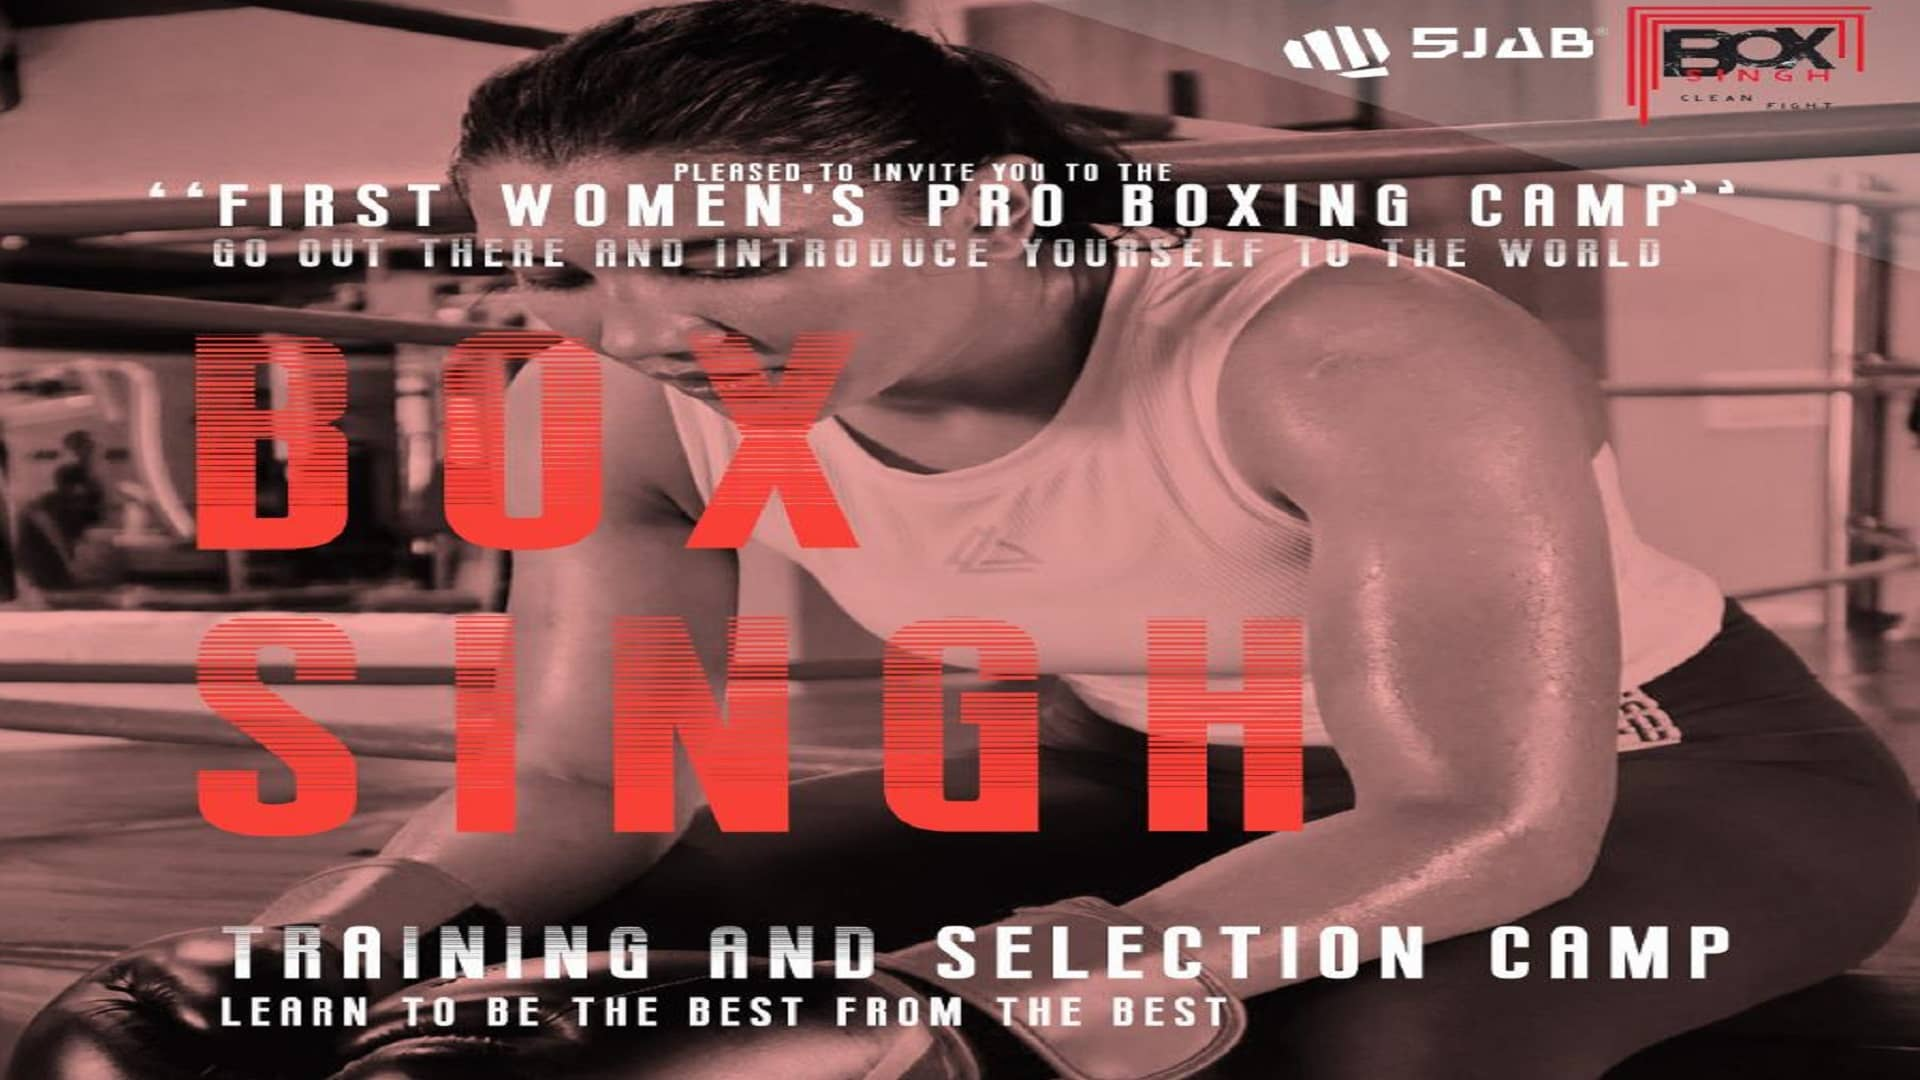 Pro-Boxing-Camp-Female-Indian-Boxers